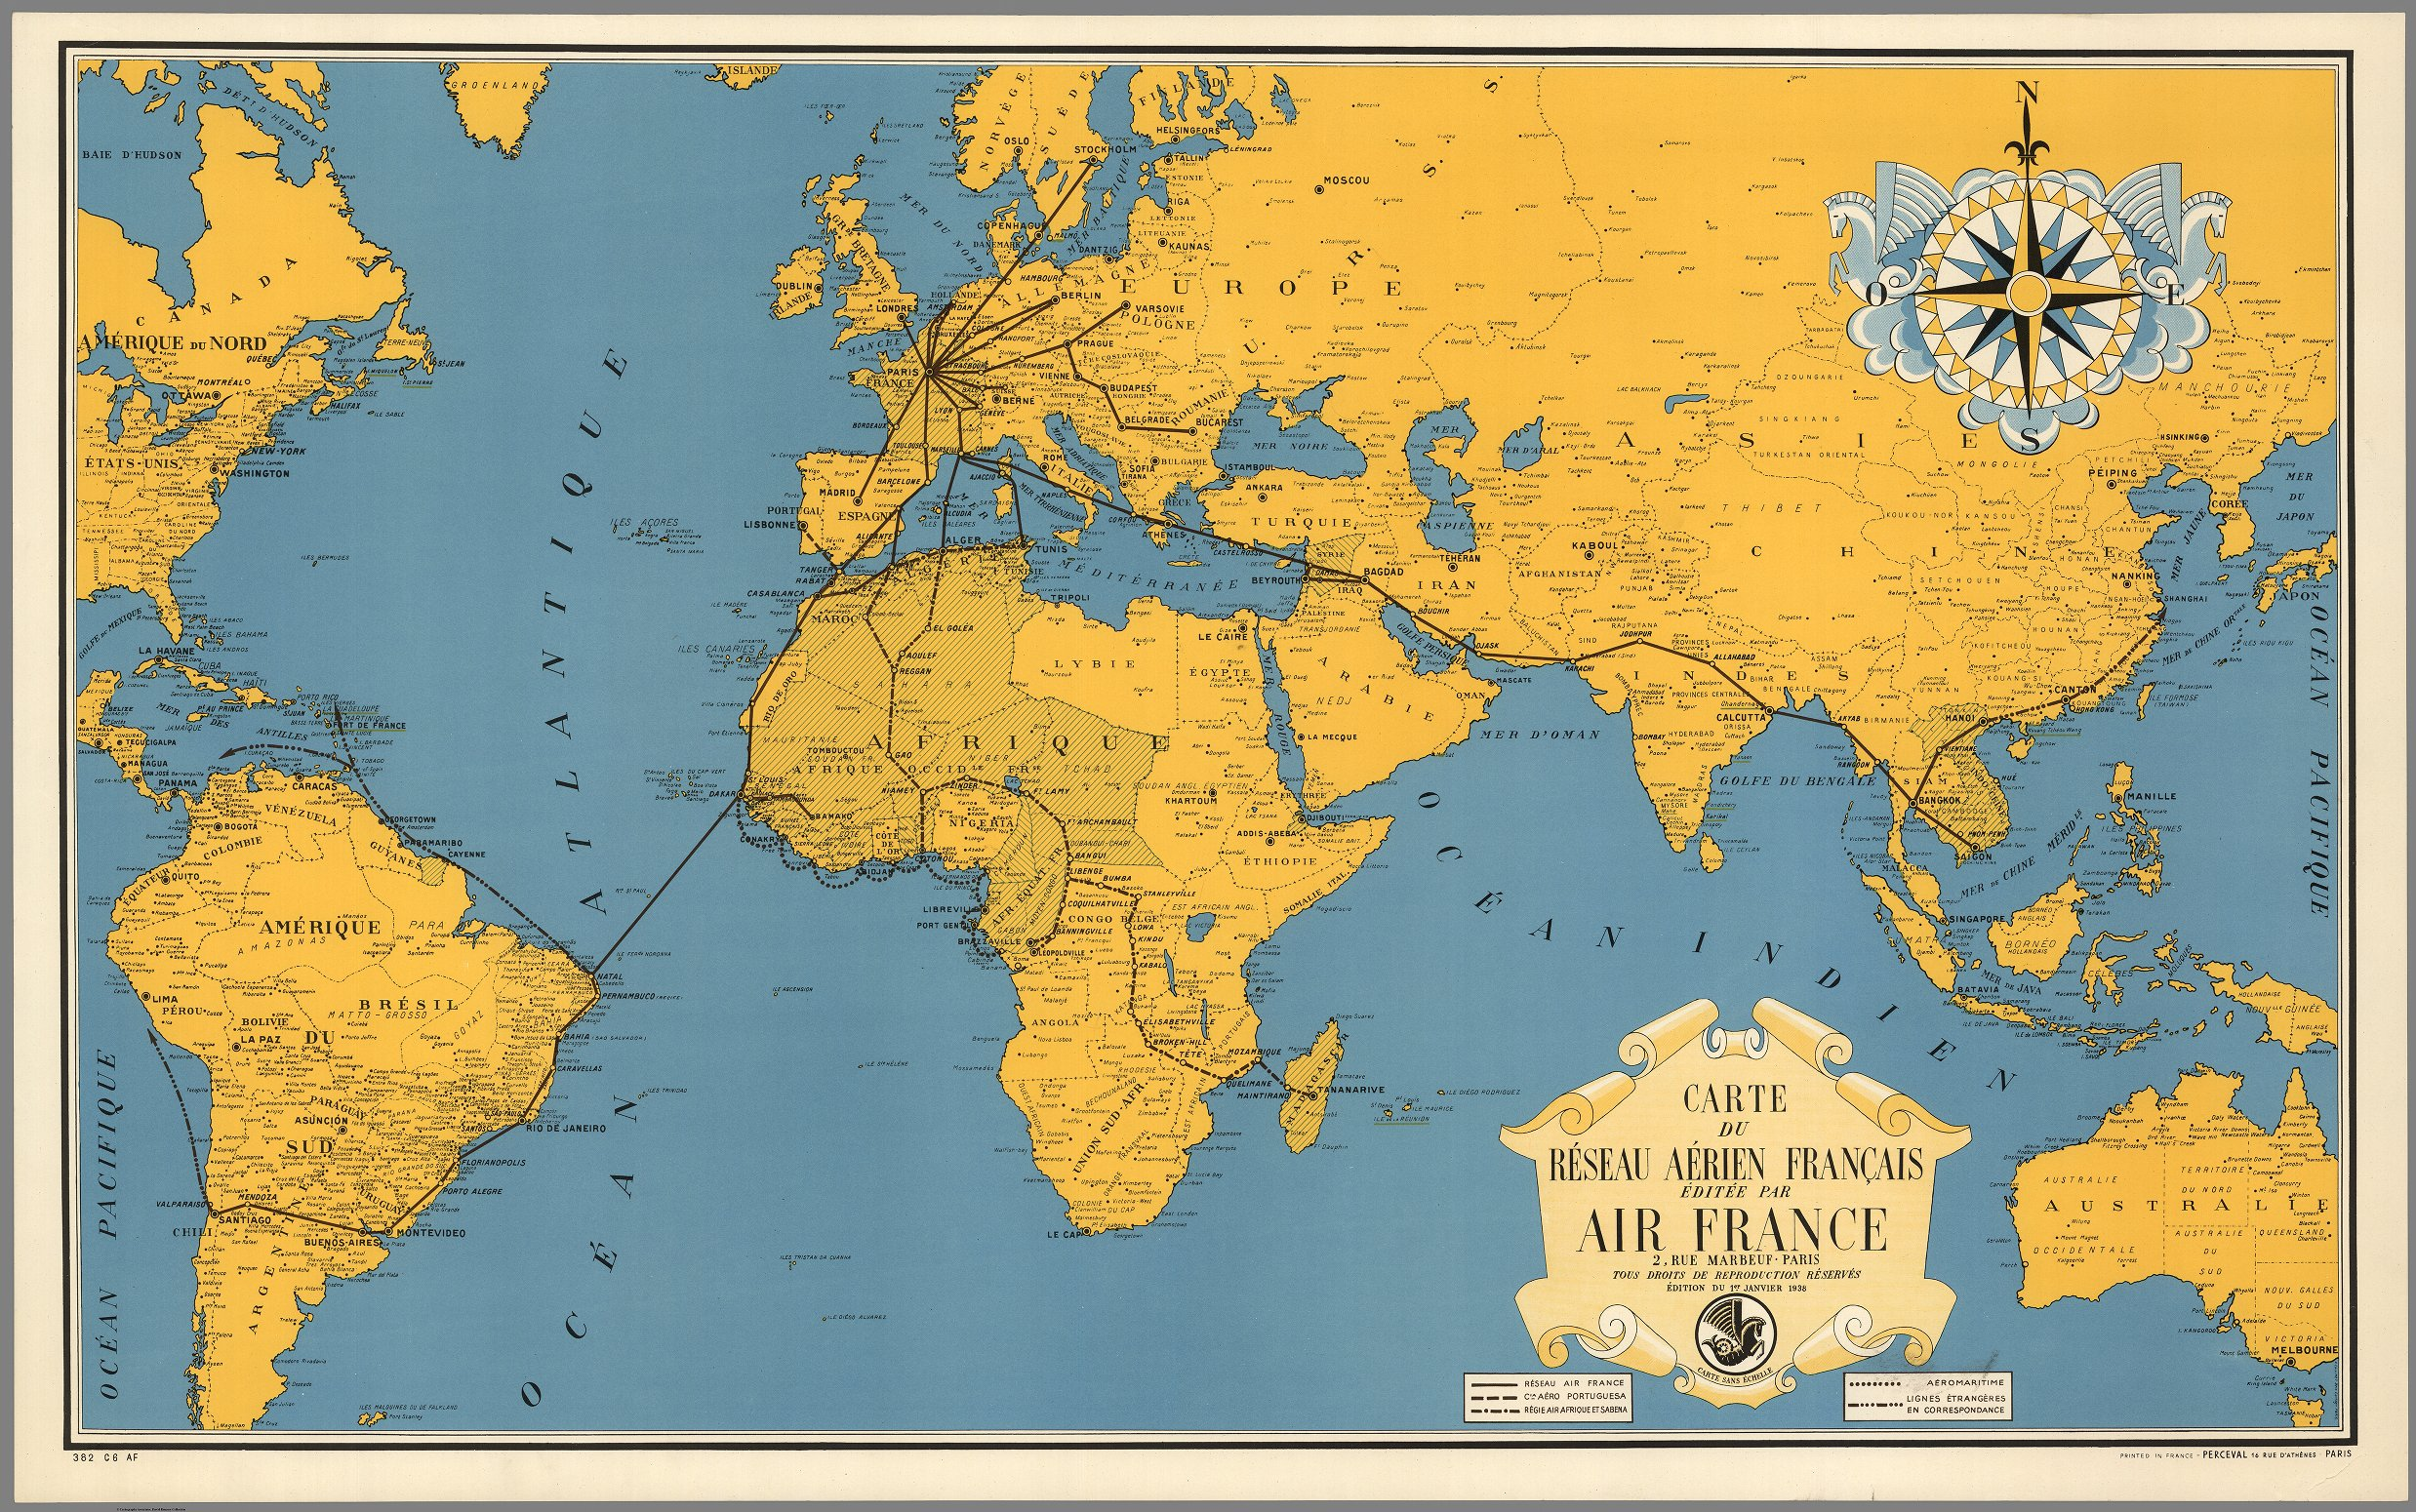 Free map vintage png clipart clipground free map vintage png clipart gumiabroncs Gallery